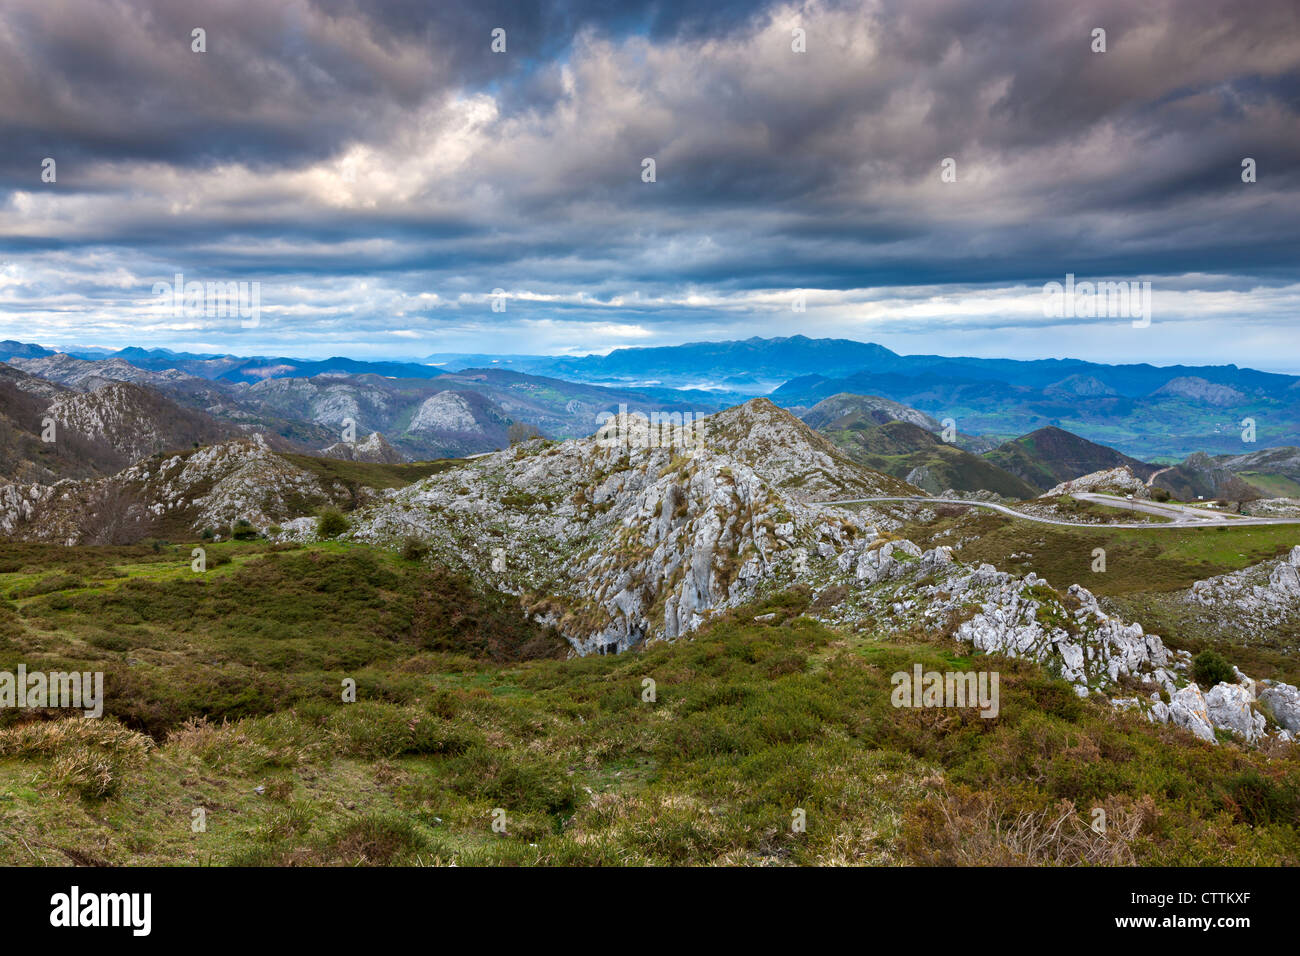 View on mountain near Mirador de La Reina at Covadonga, Picos de Europa National Park, Asturias, Northern Spain - Stock Image